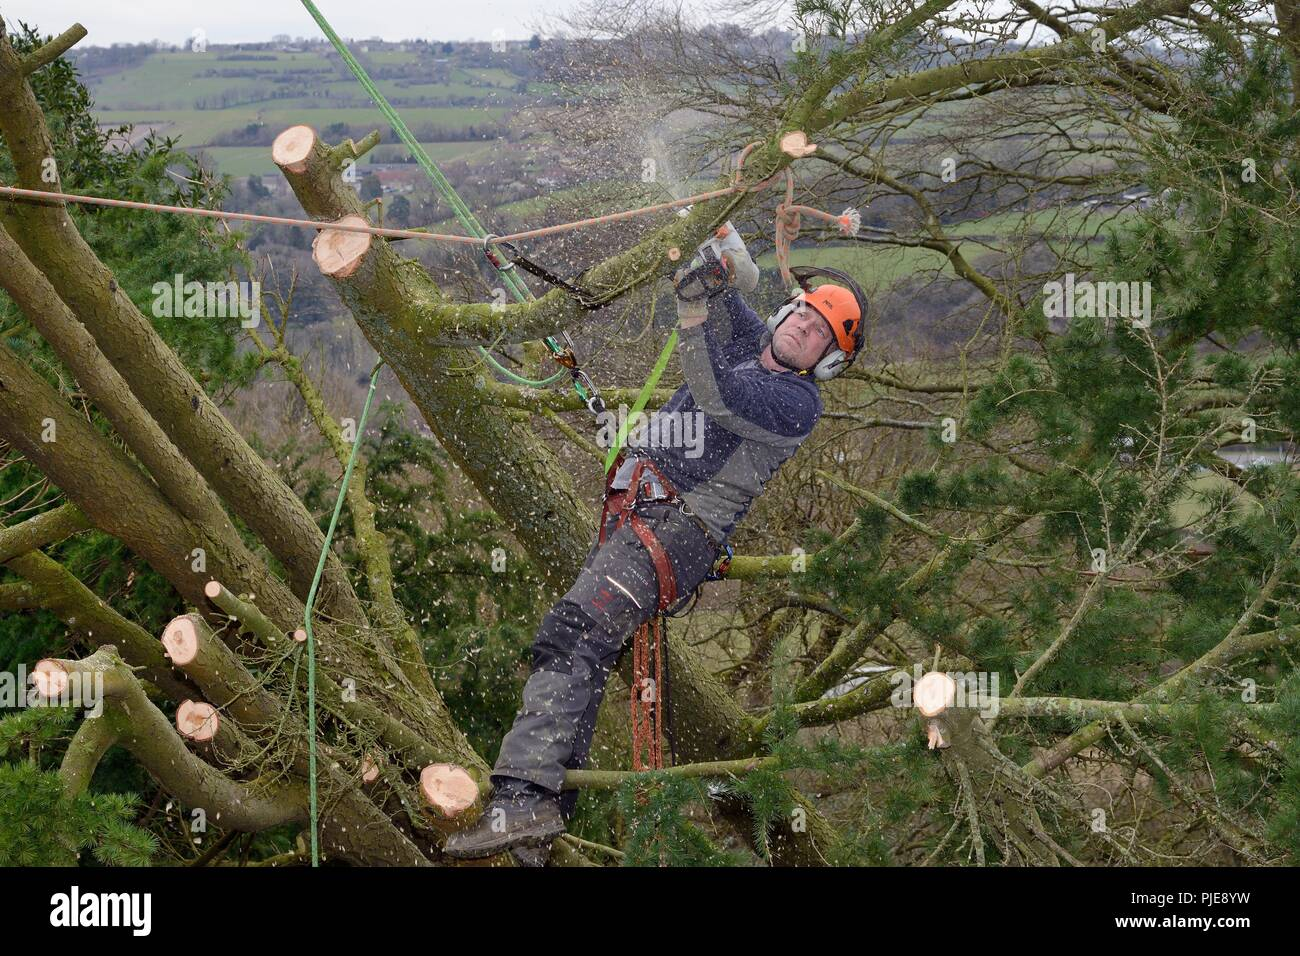 Tree surgeon cutting branches of a Deodar cedar tree uprooted in a storm, Wiltshire UK, March. - Stock Image